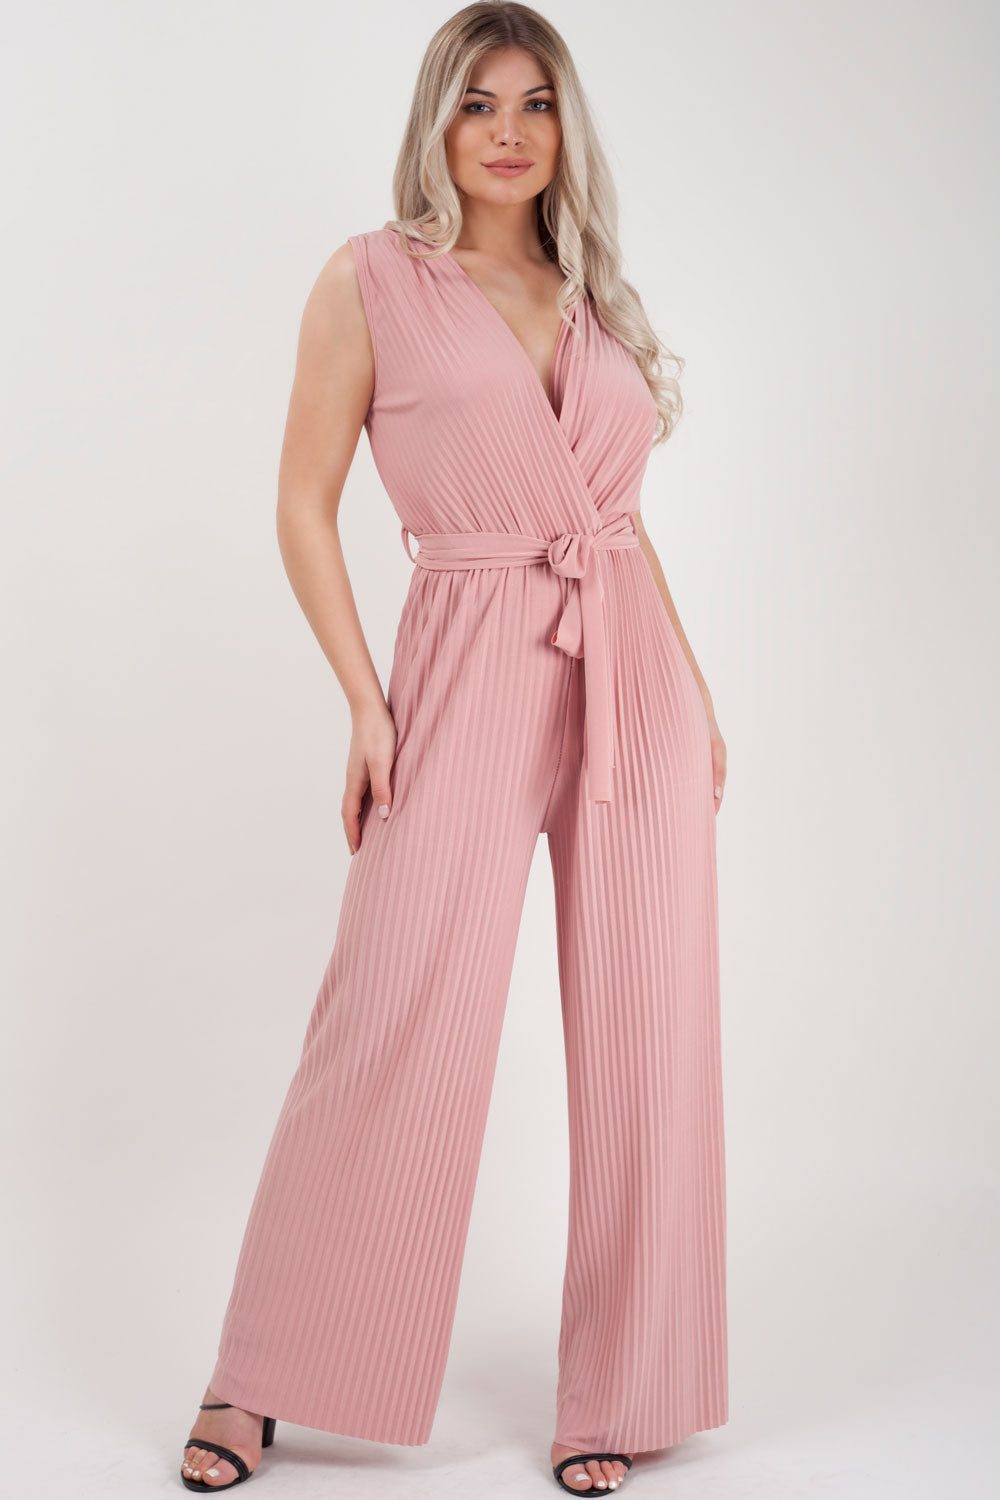 pink wide leg jumpsuit styledup fashion